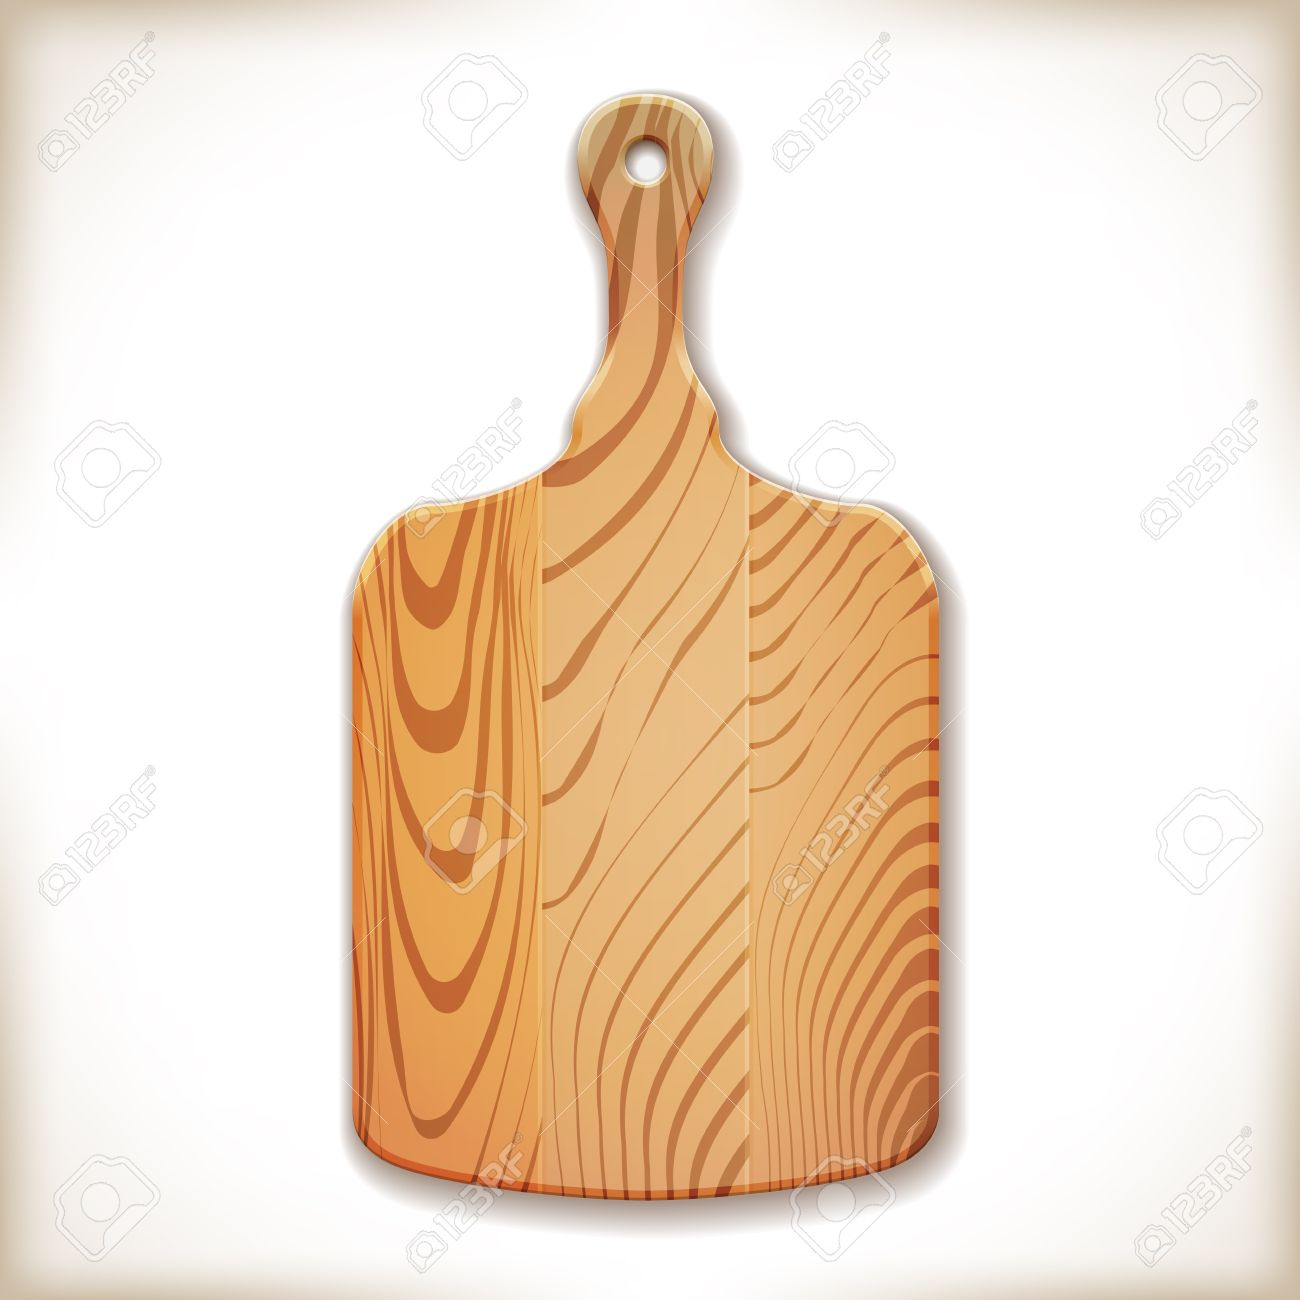 Vector Wood Cutting Board Isolated On White Royalty Free Cliparts.